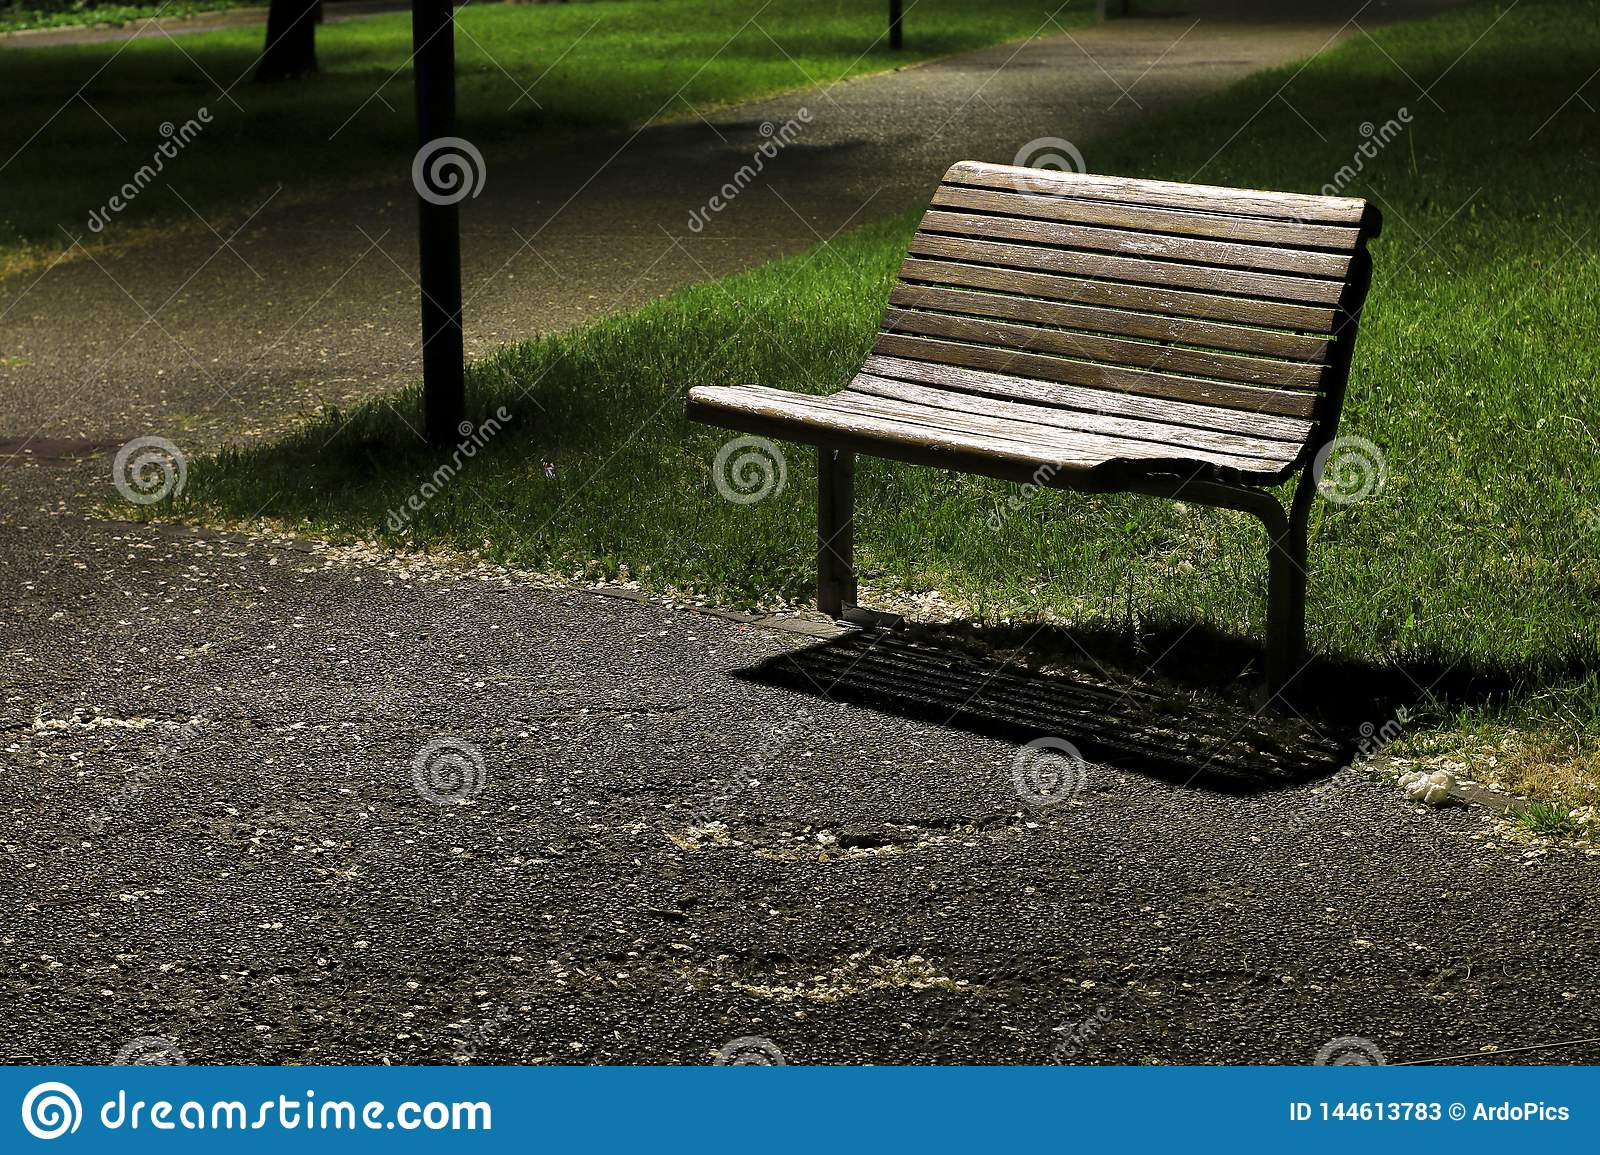 Bench in the park at night